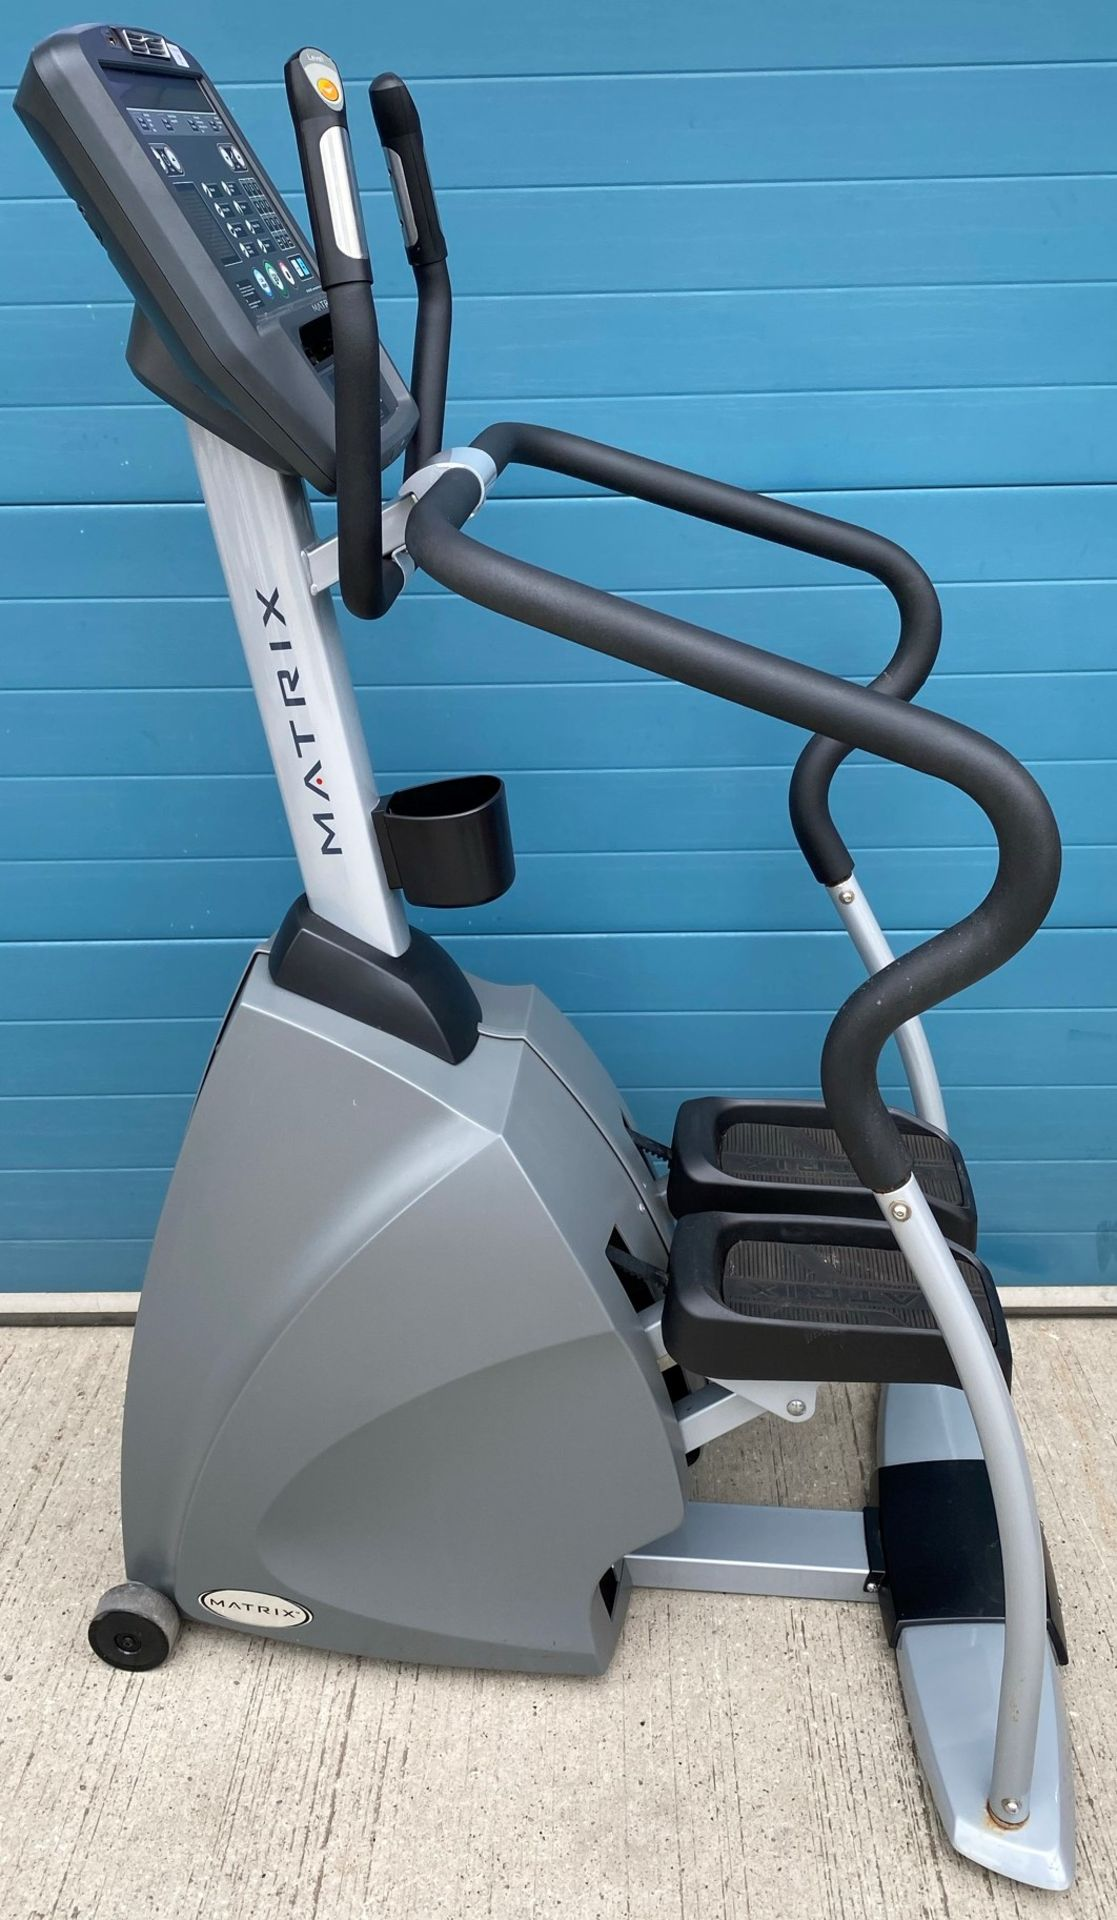 A Matrix S5x Stepper Further Information Stepper has been tested briefly. - Image 2 of 5